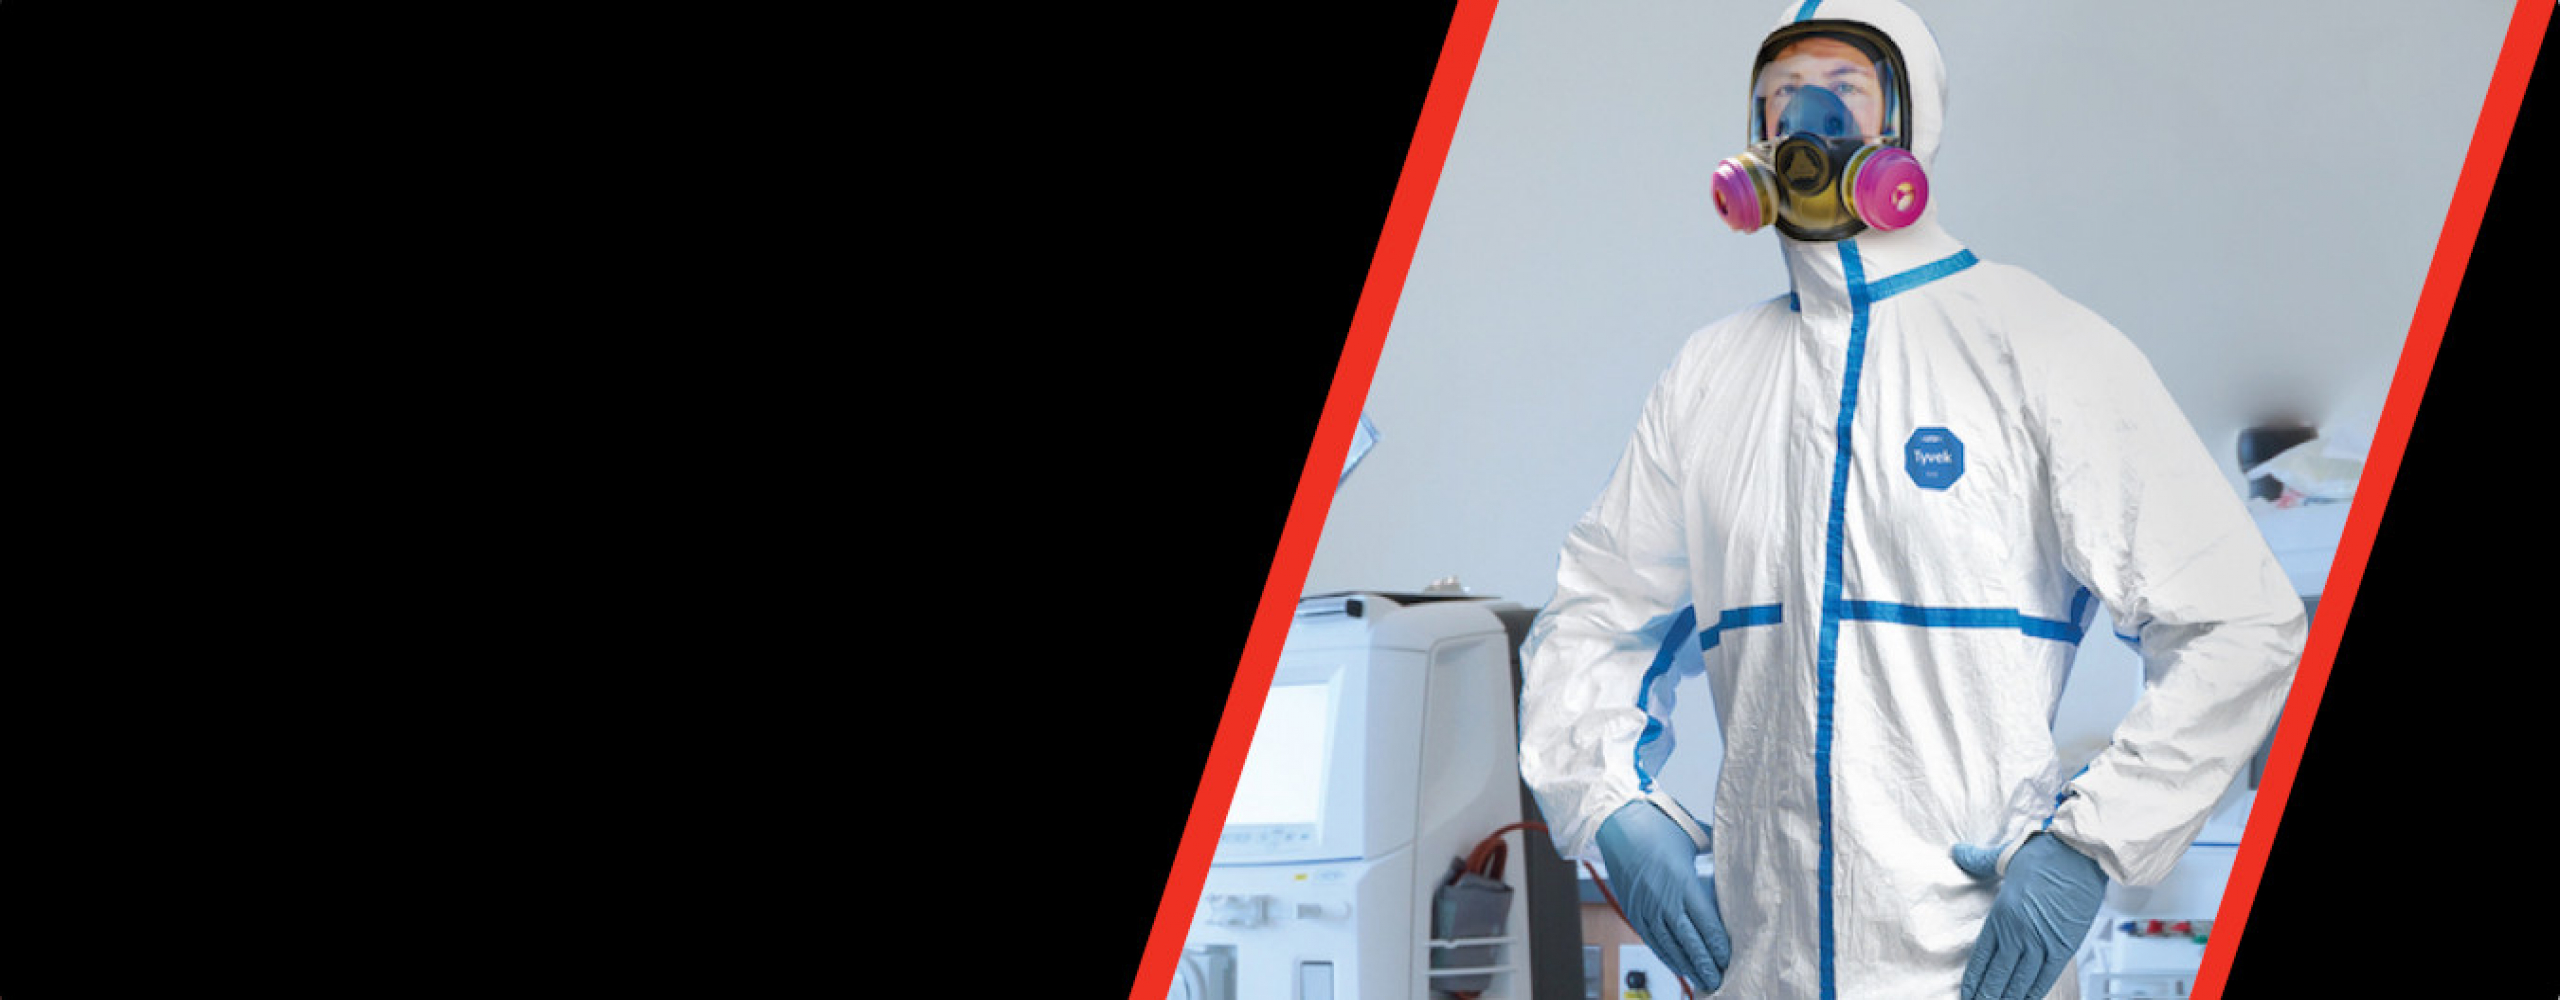 Helman Group - Protective Clothing